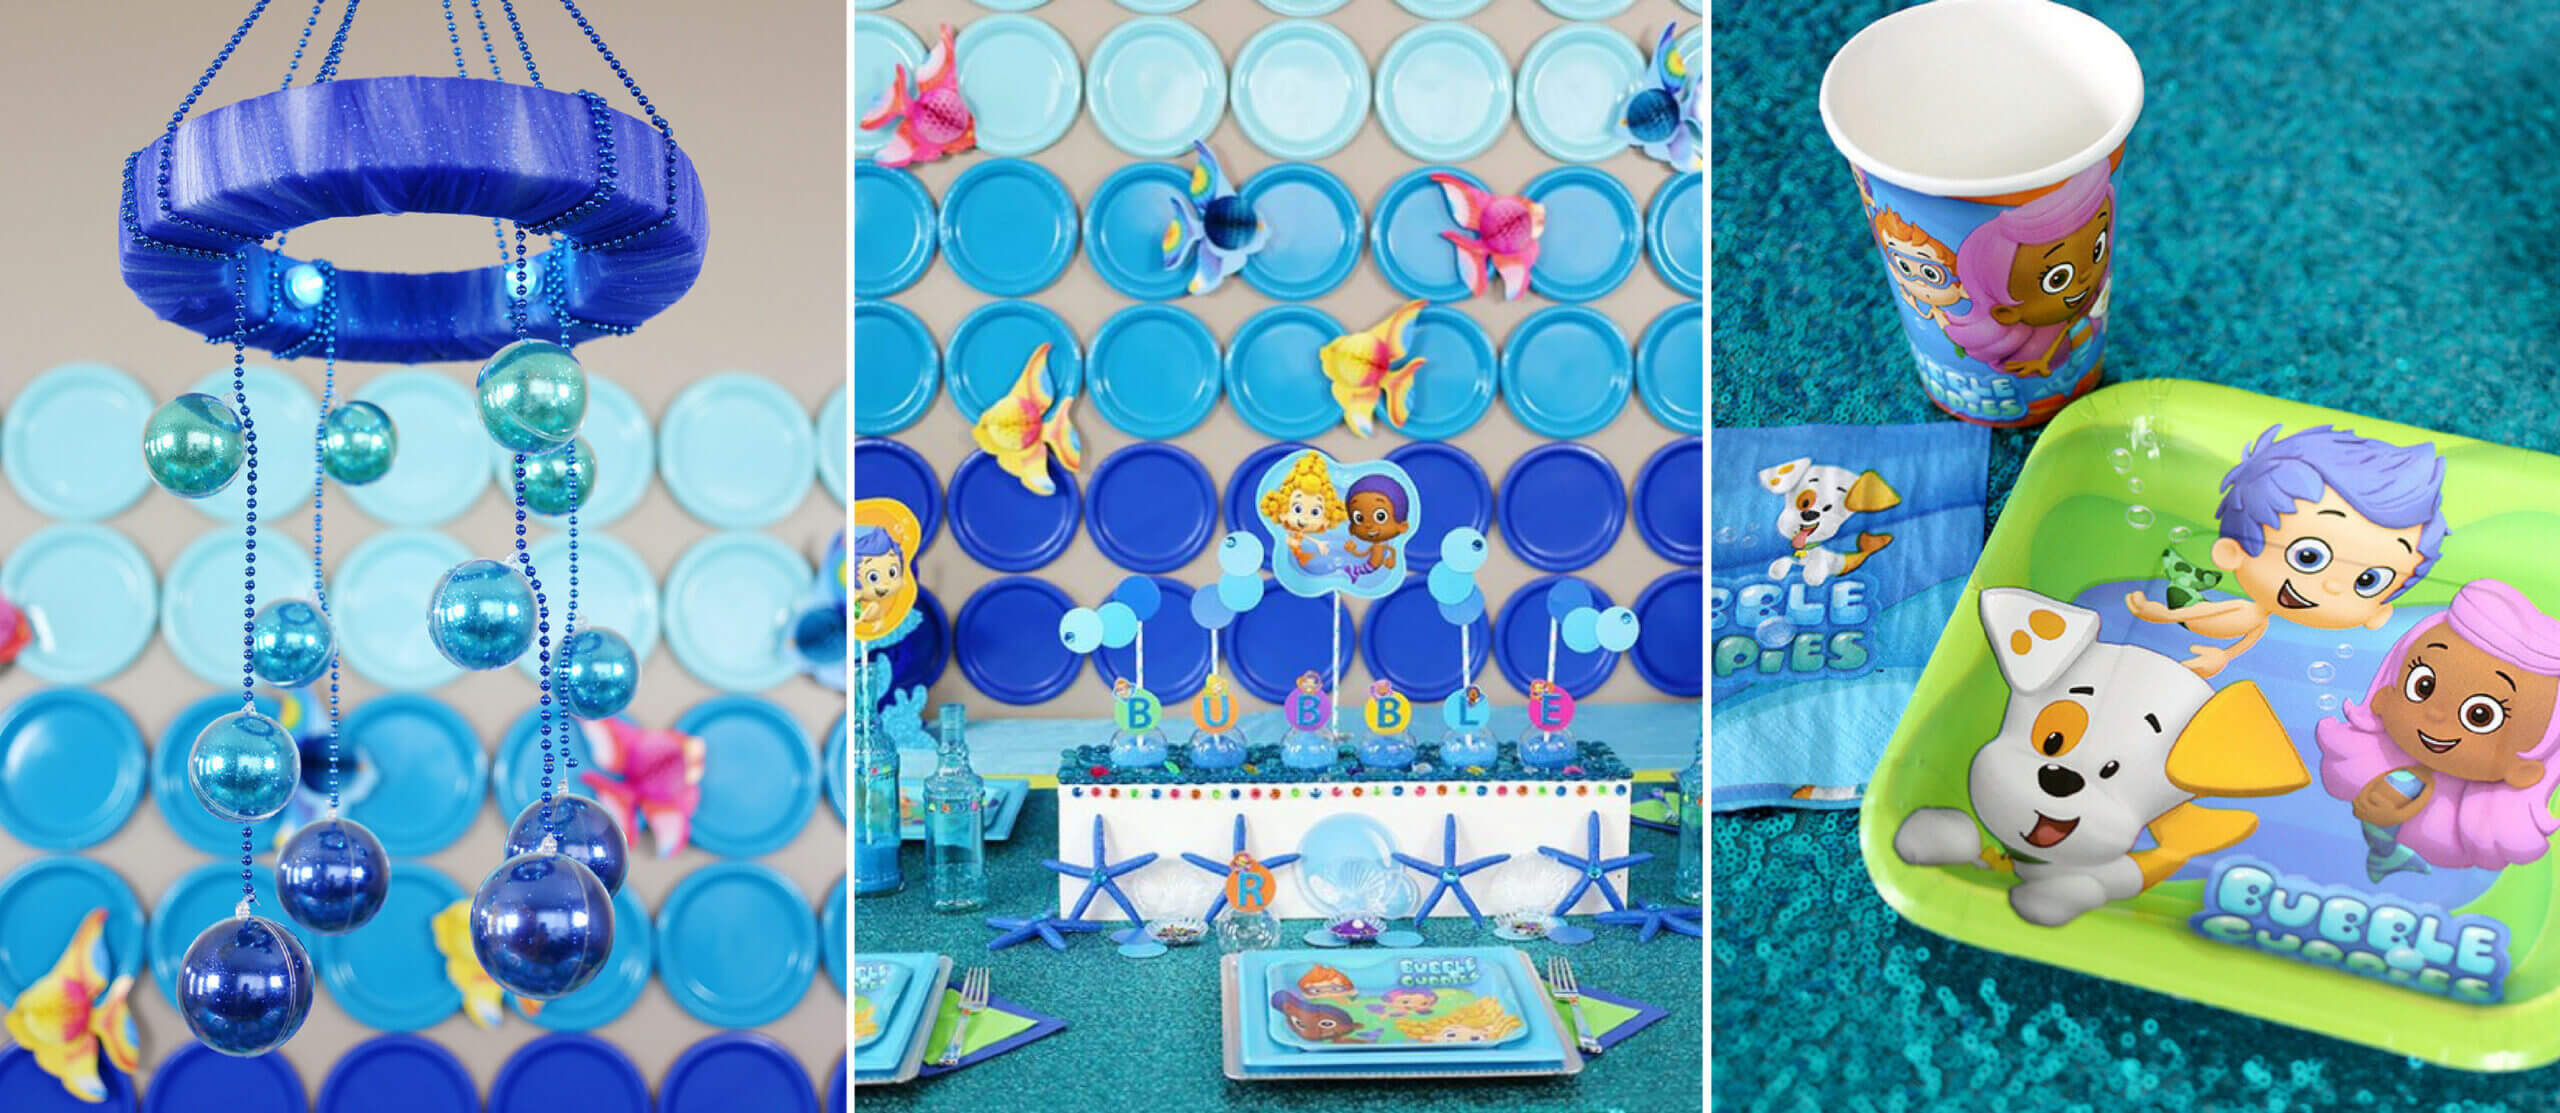 Bubble Guppies™ Diy Party Ideas   Fun365 Intended For Bubble Guppies Birthday Banner Template